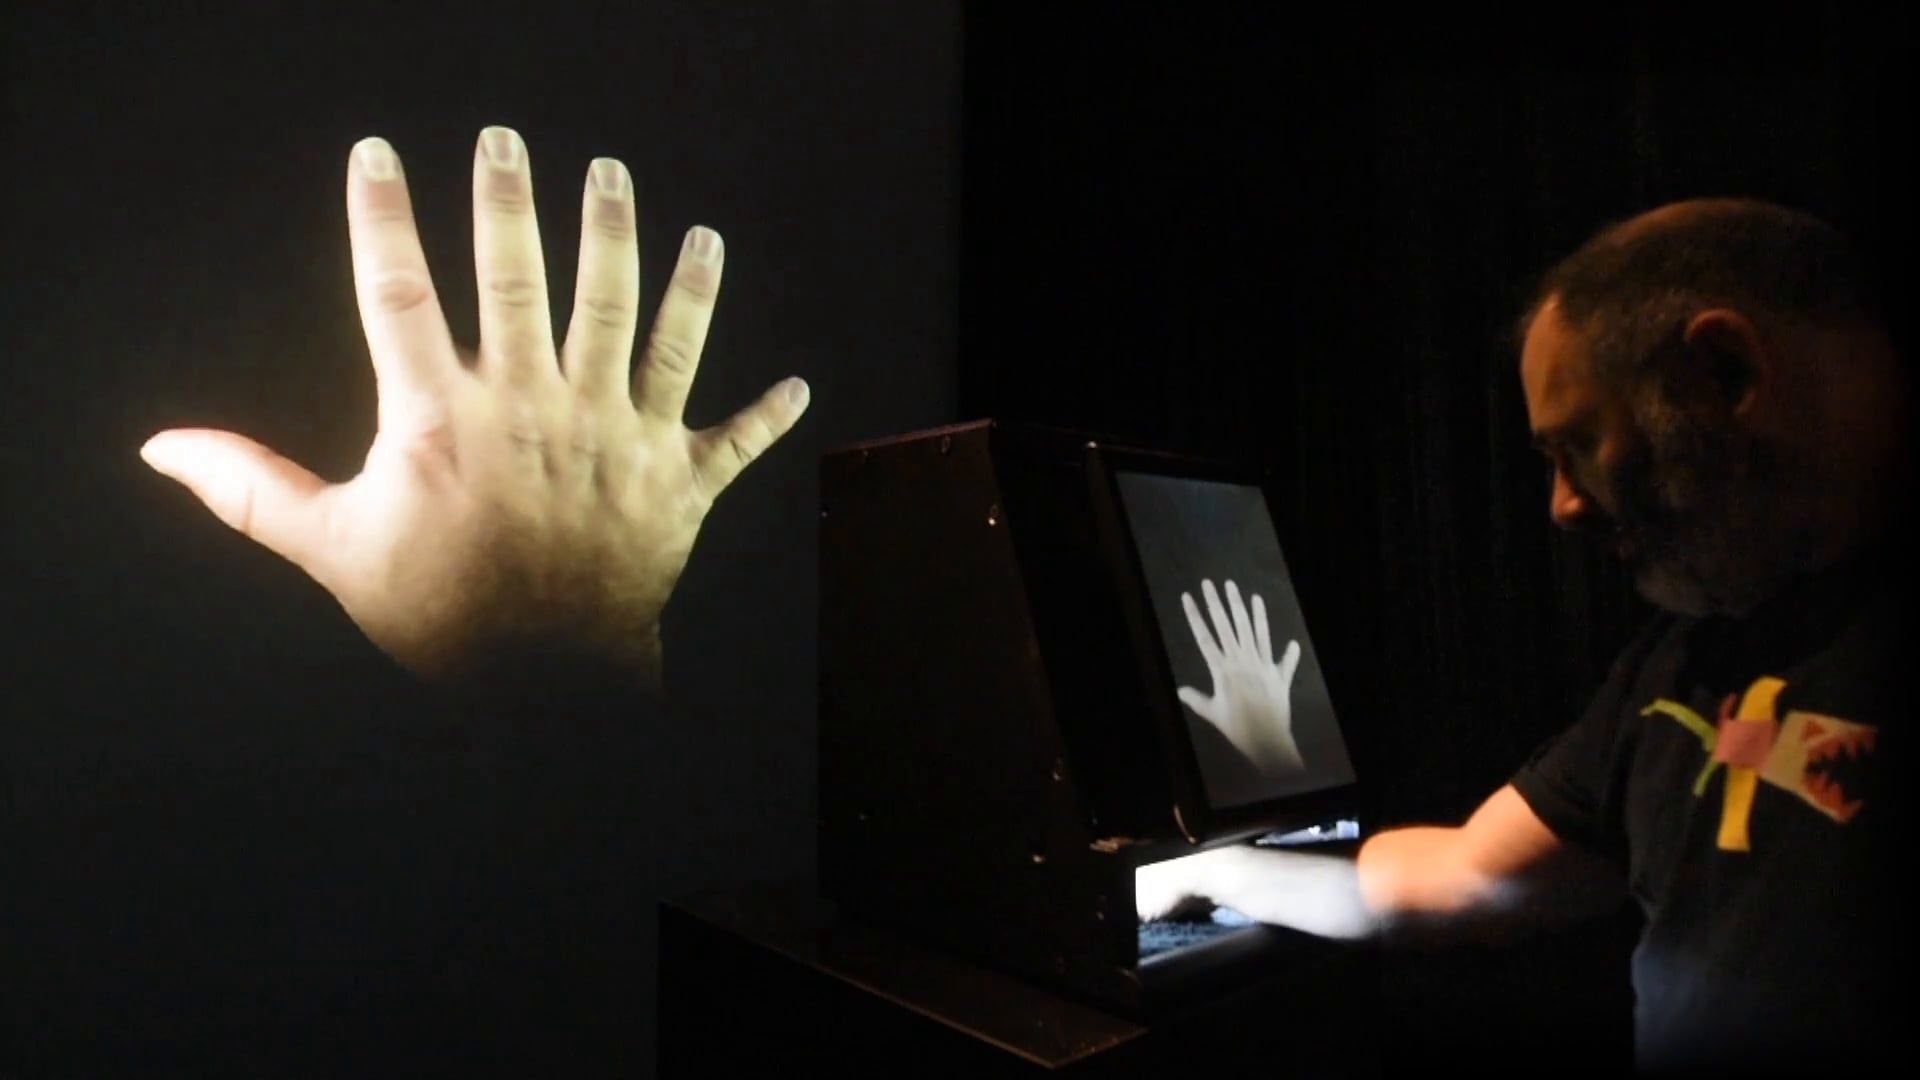 Augmented Hand Series (Demonstration, 2014)